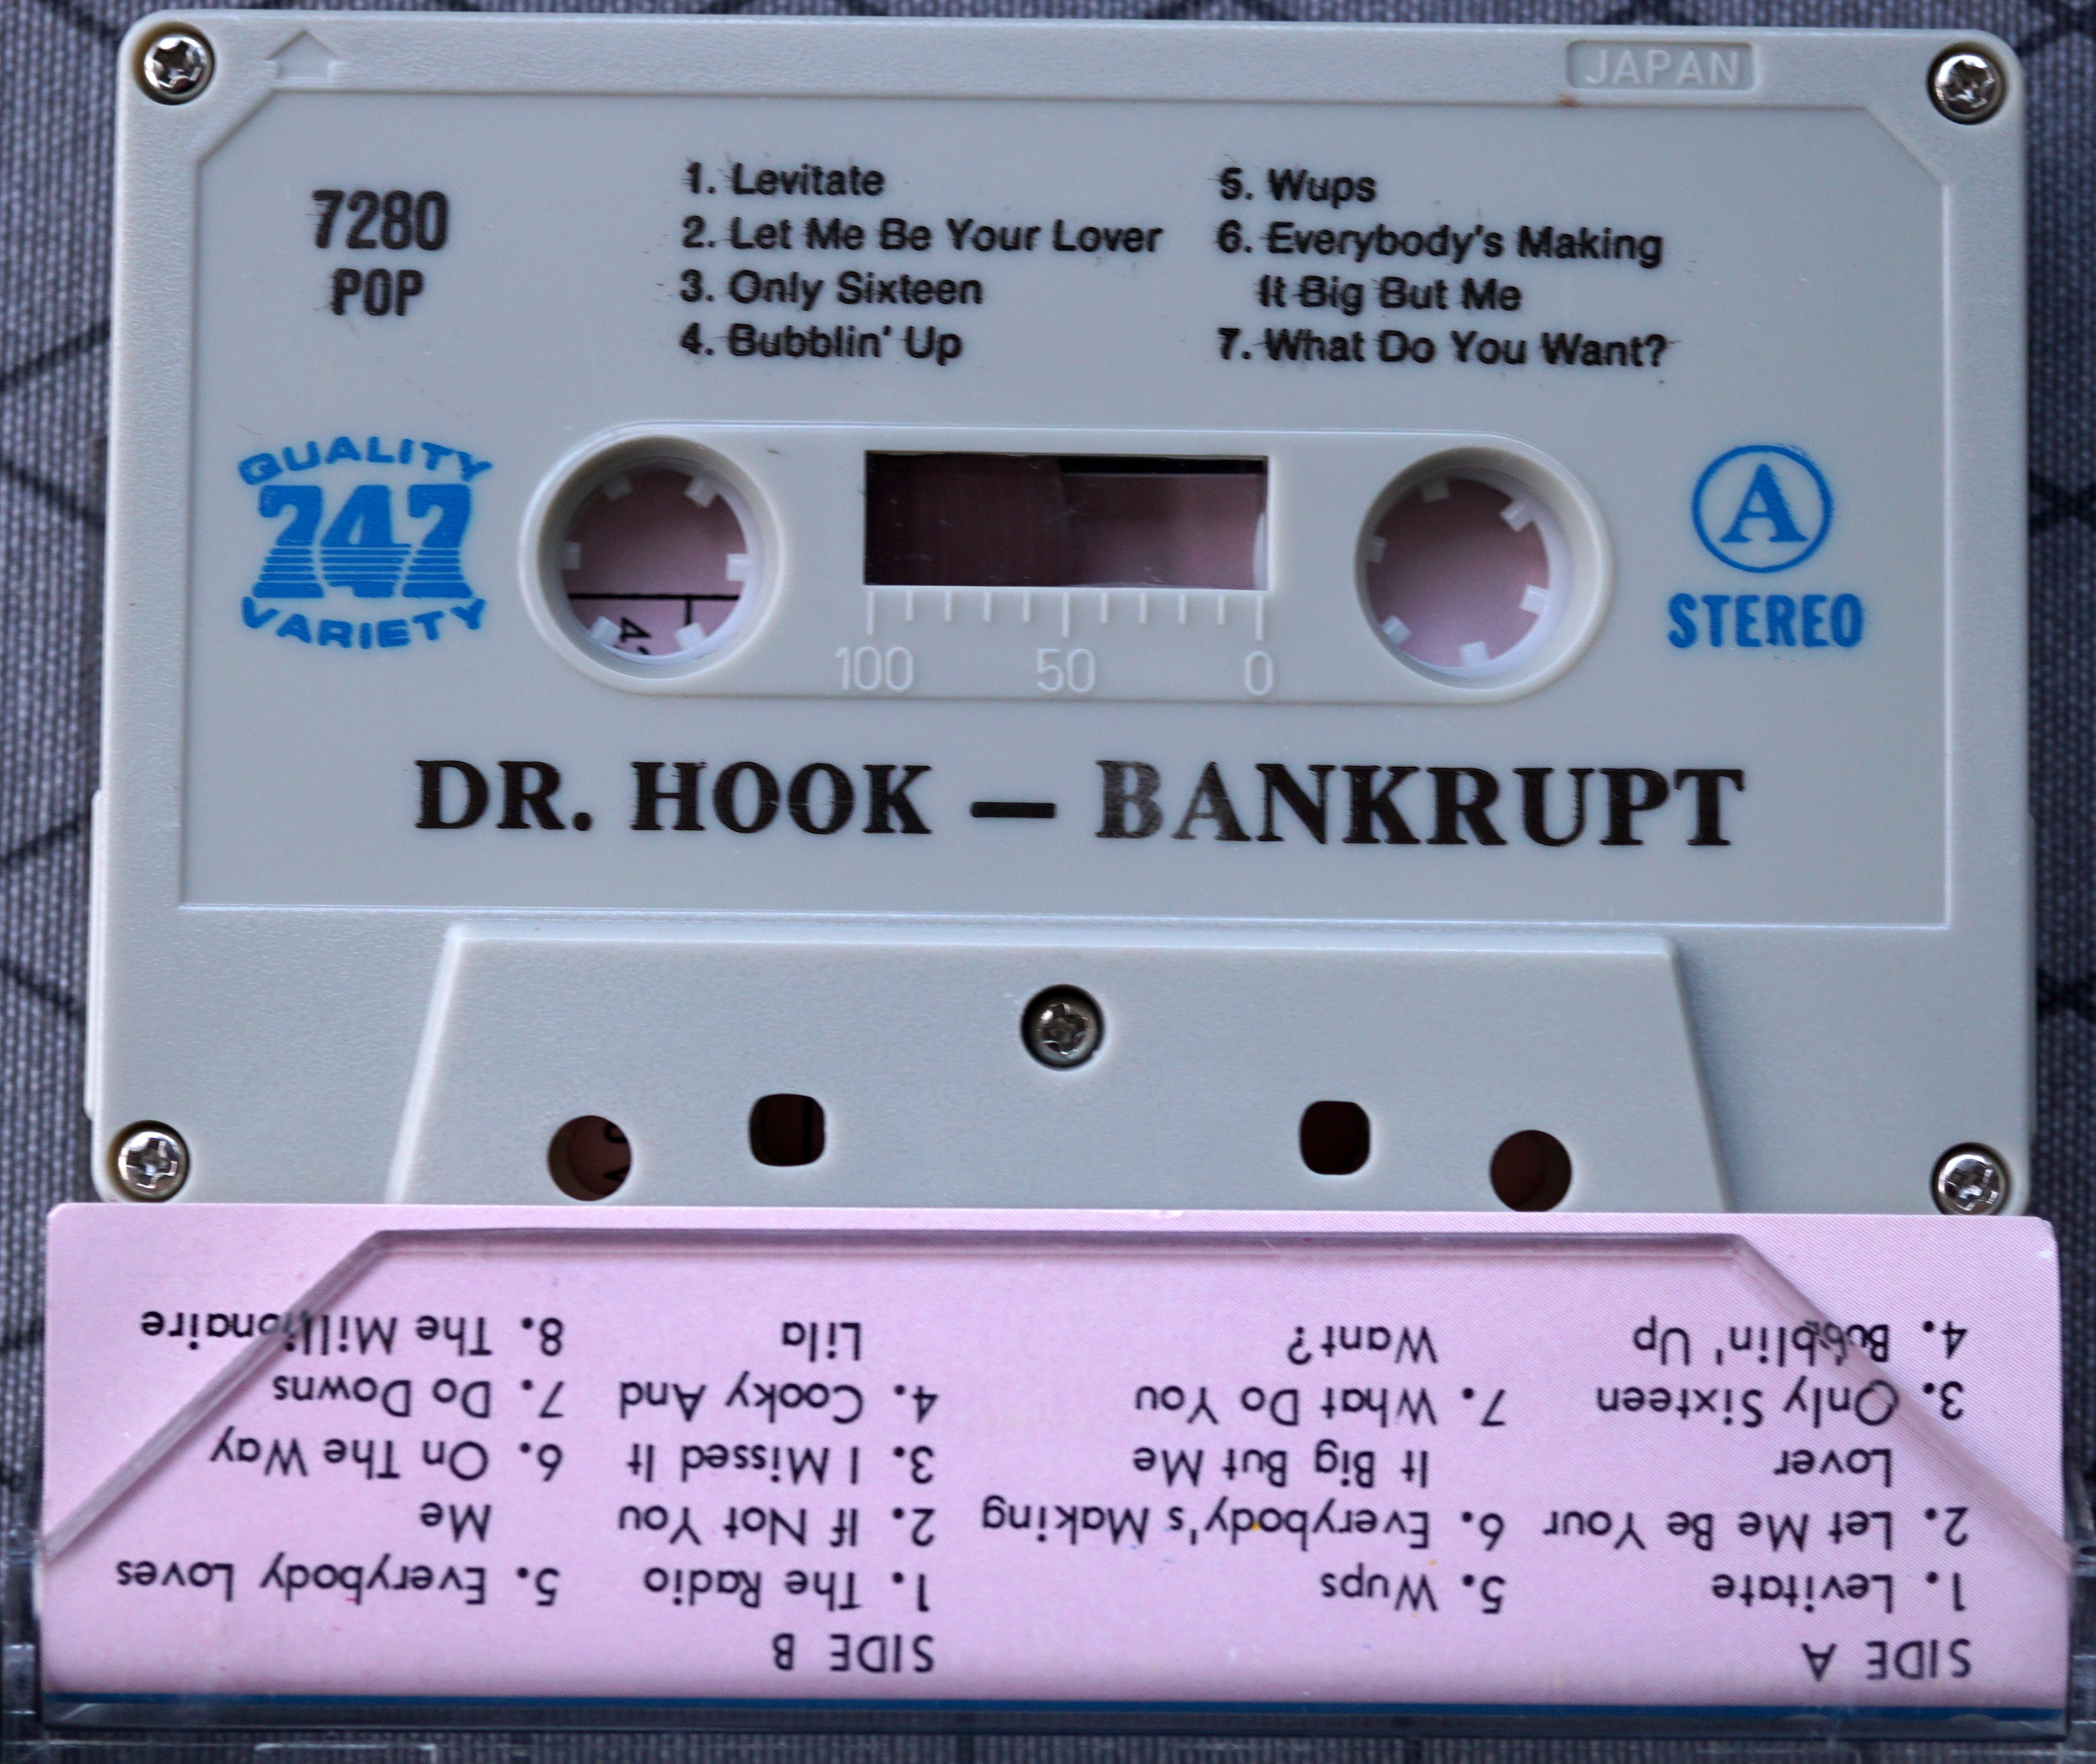 P - 747 POP 7280 - Bankrupt - 2